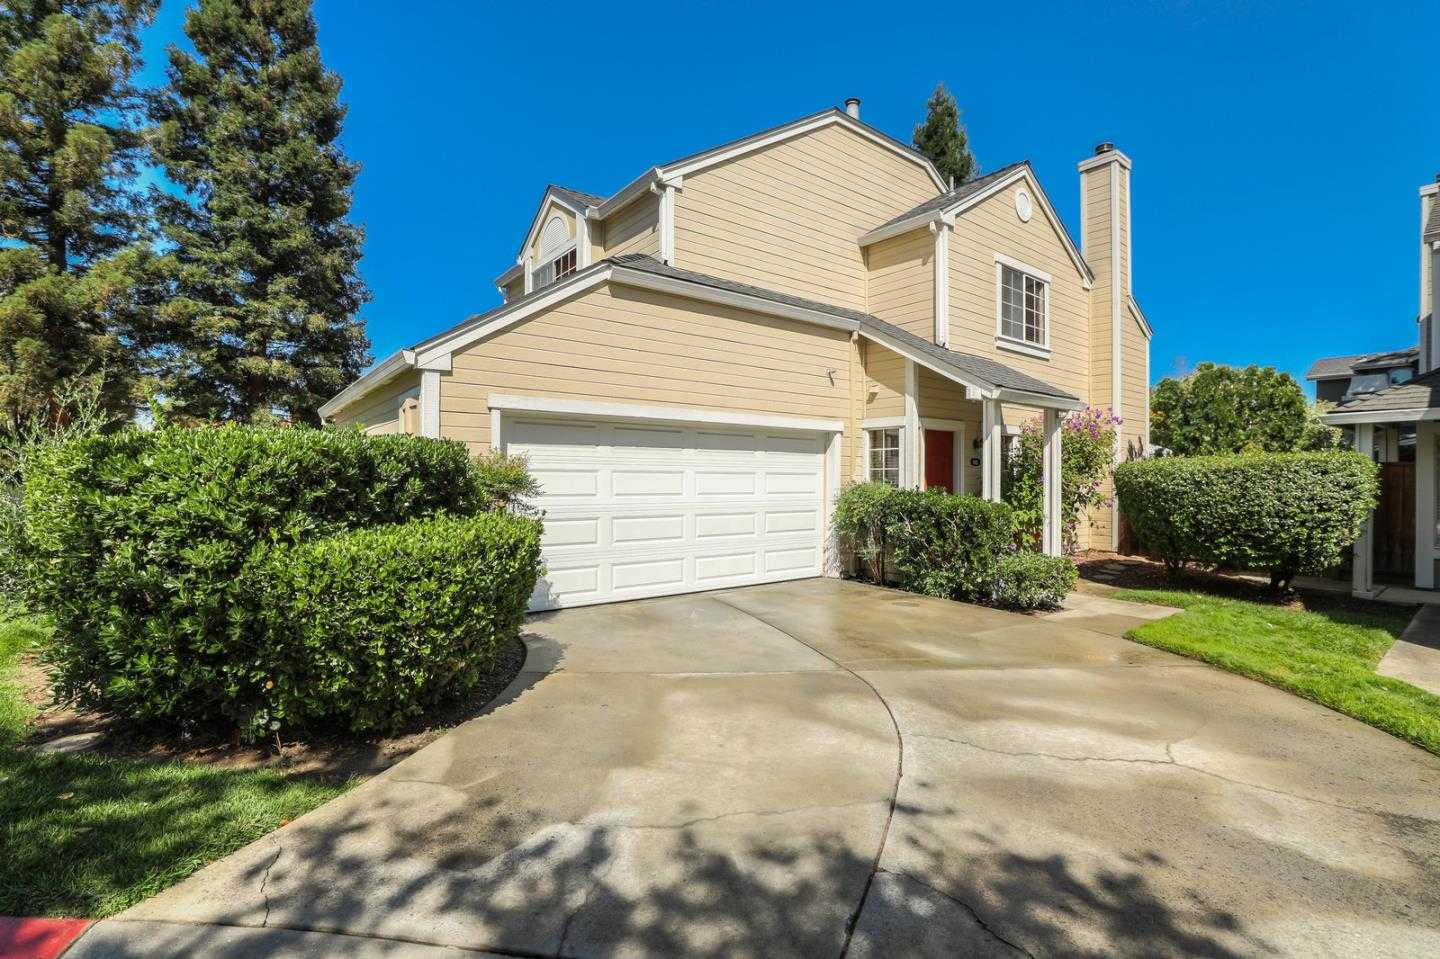 189 Easy St # AA Mountain View, CA 94043